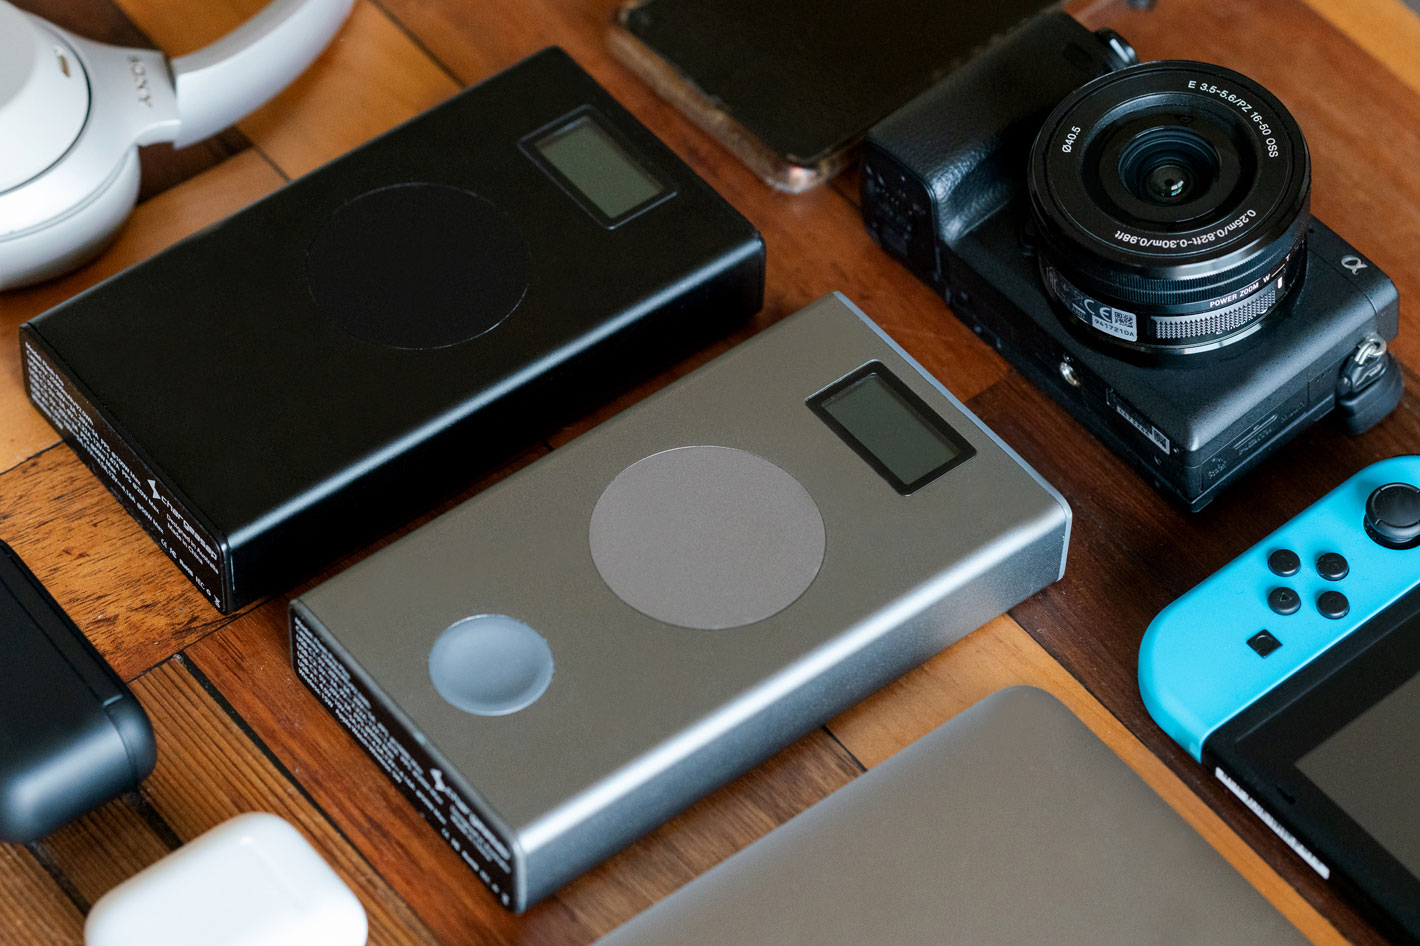 Flash Pro and Flash Pro Plus: the world's most powerful power banks